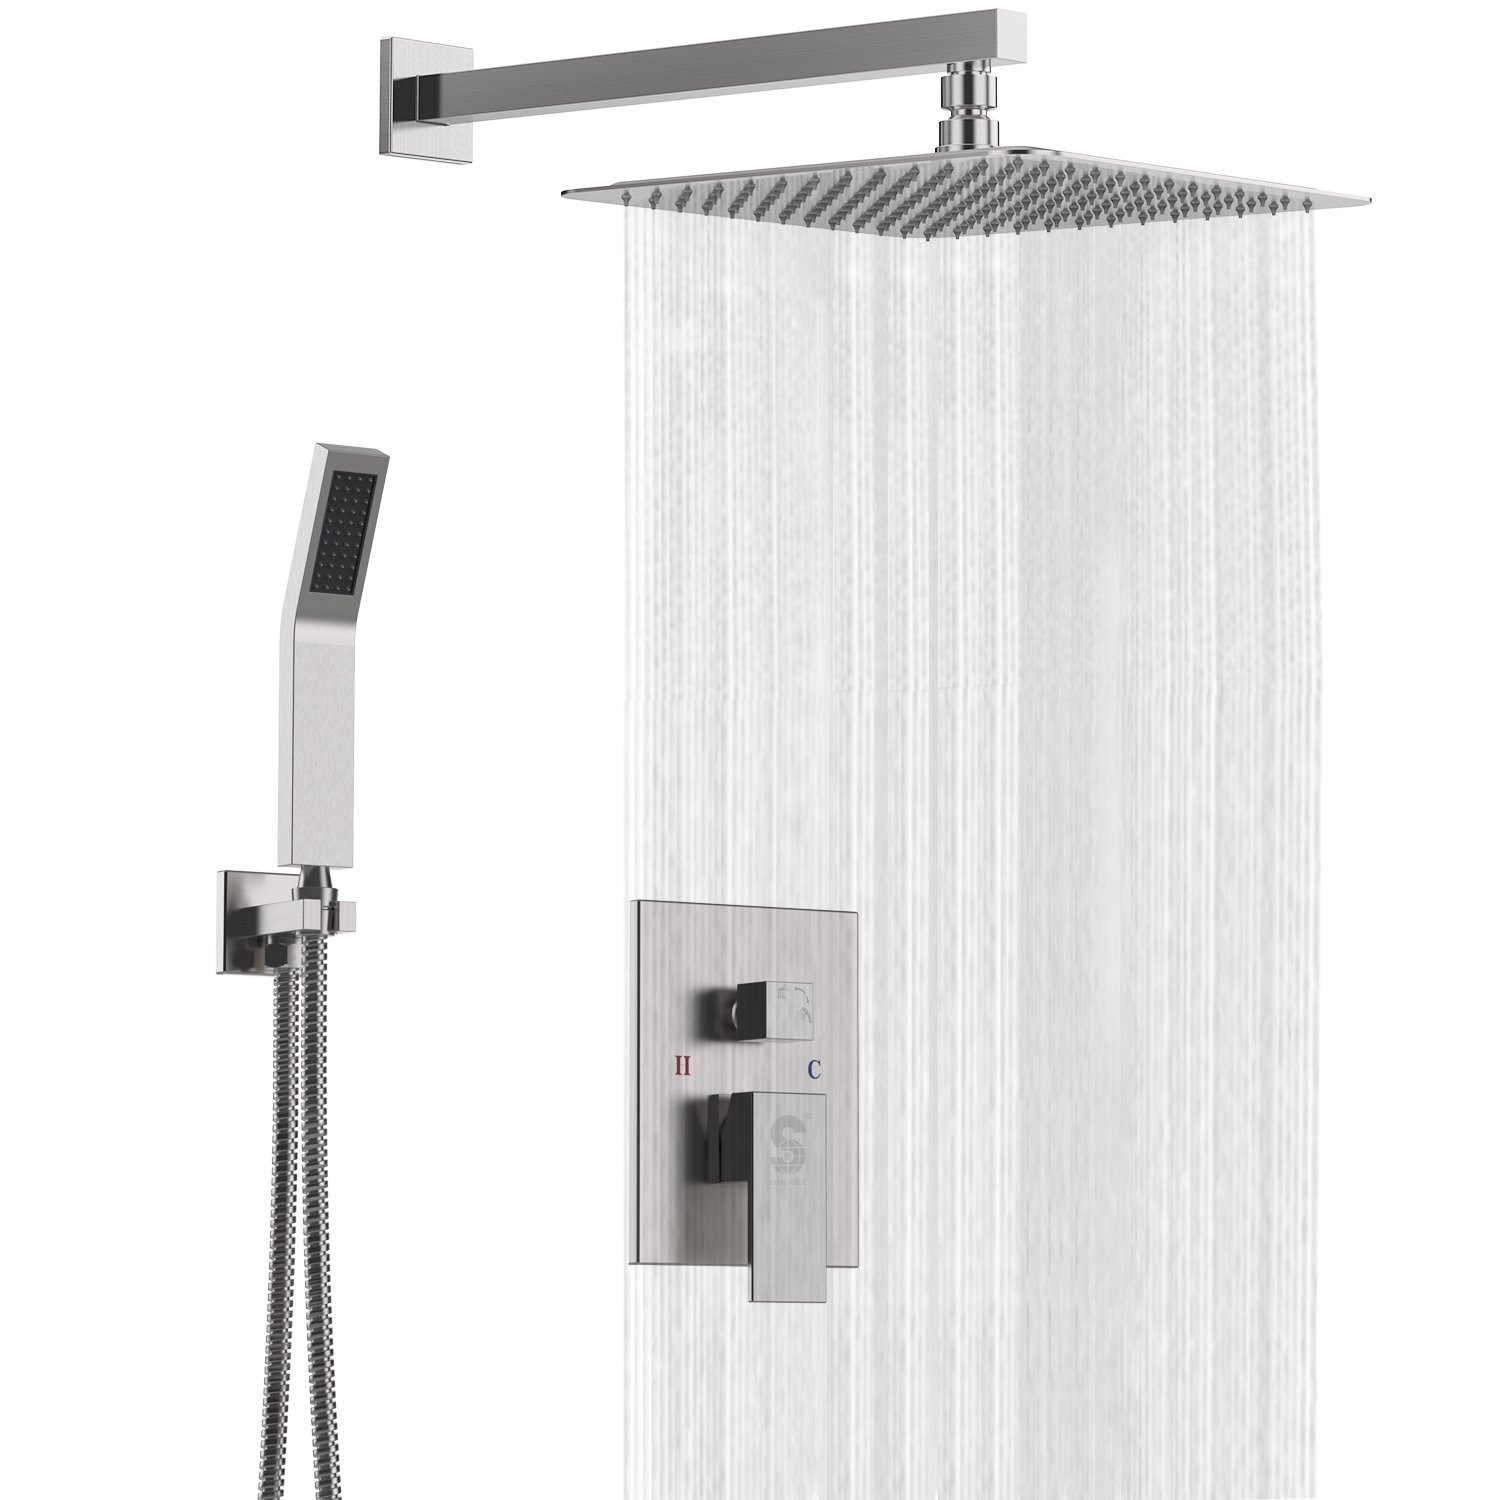 Contain Shower Faucet Rough-in Valve Body and Trim SR SUN RISE 10 Oil Rubbed Bronze Shower System Brass Bathroom Rain Mixer Shower Faucet Set Wall Mounted Rainfall Shower Head System,CA-ORB1003